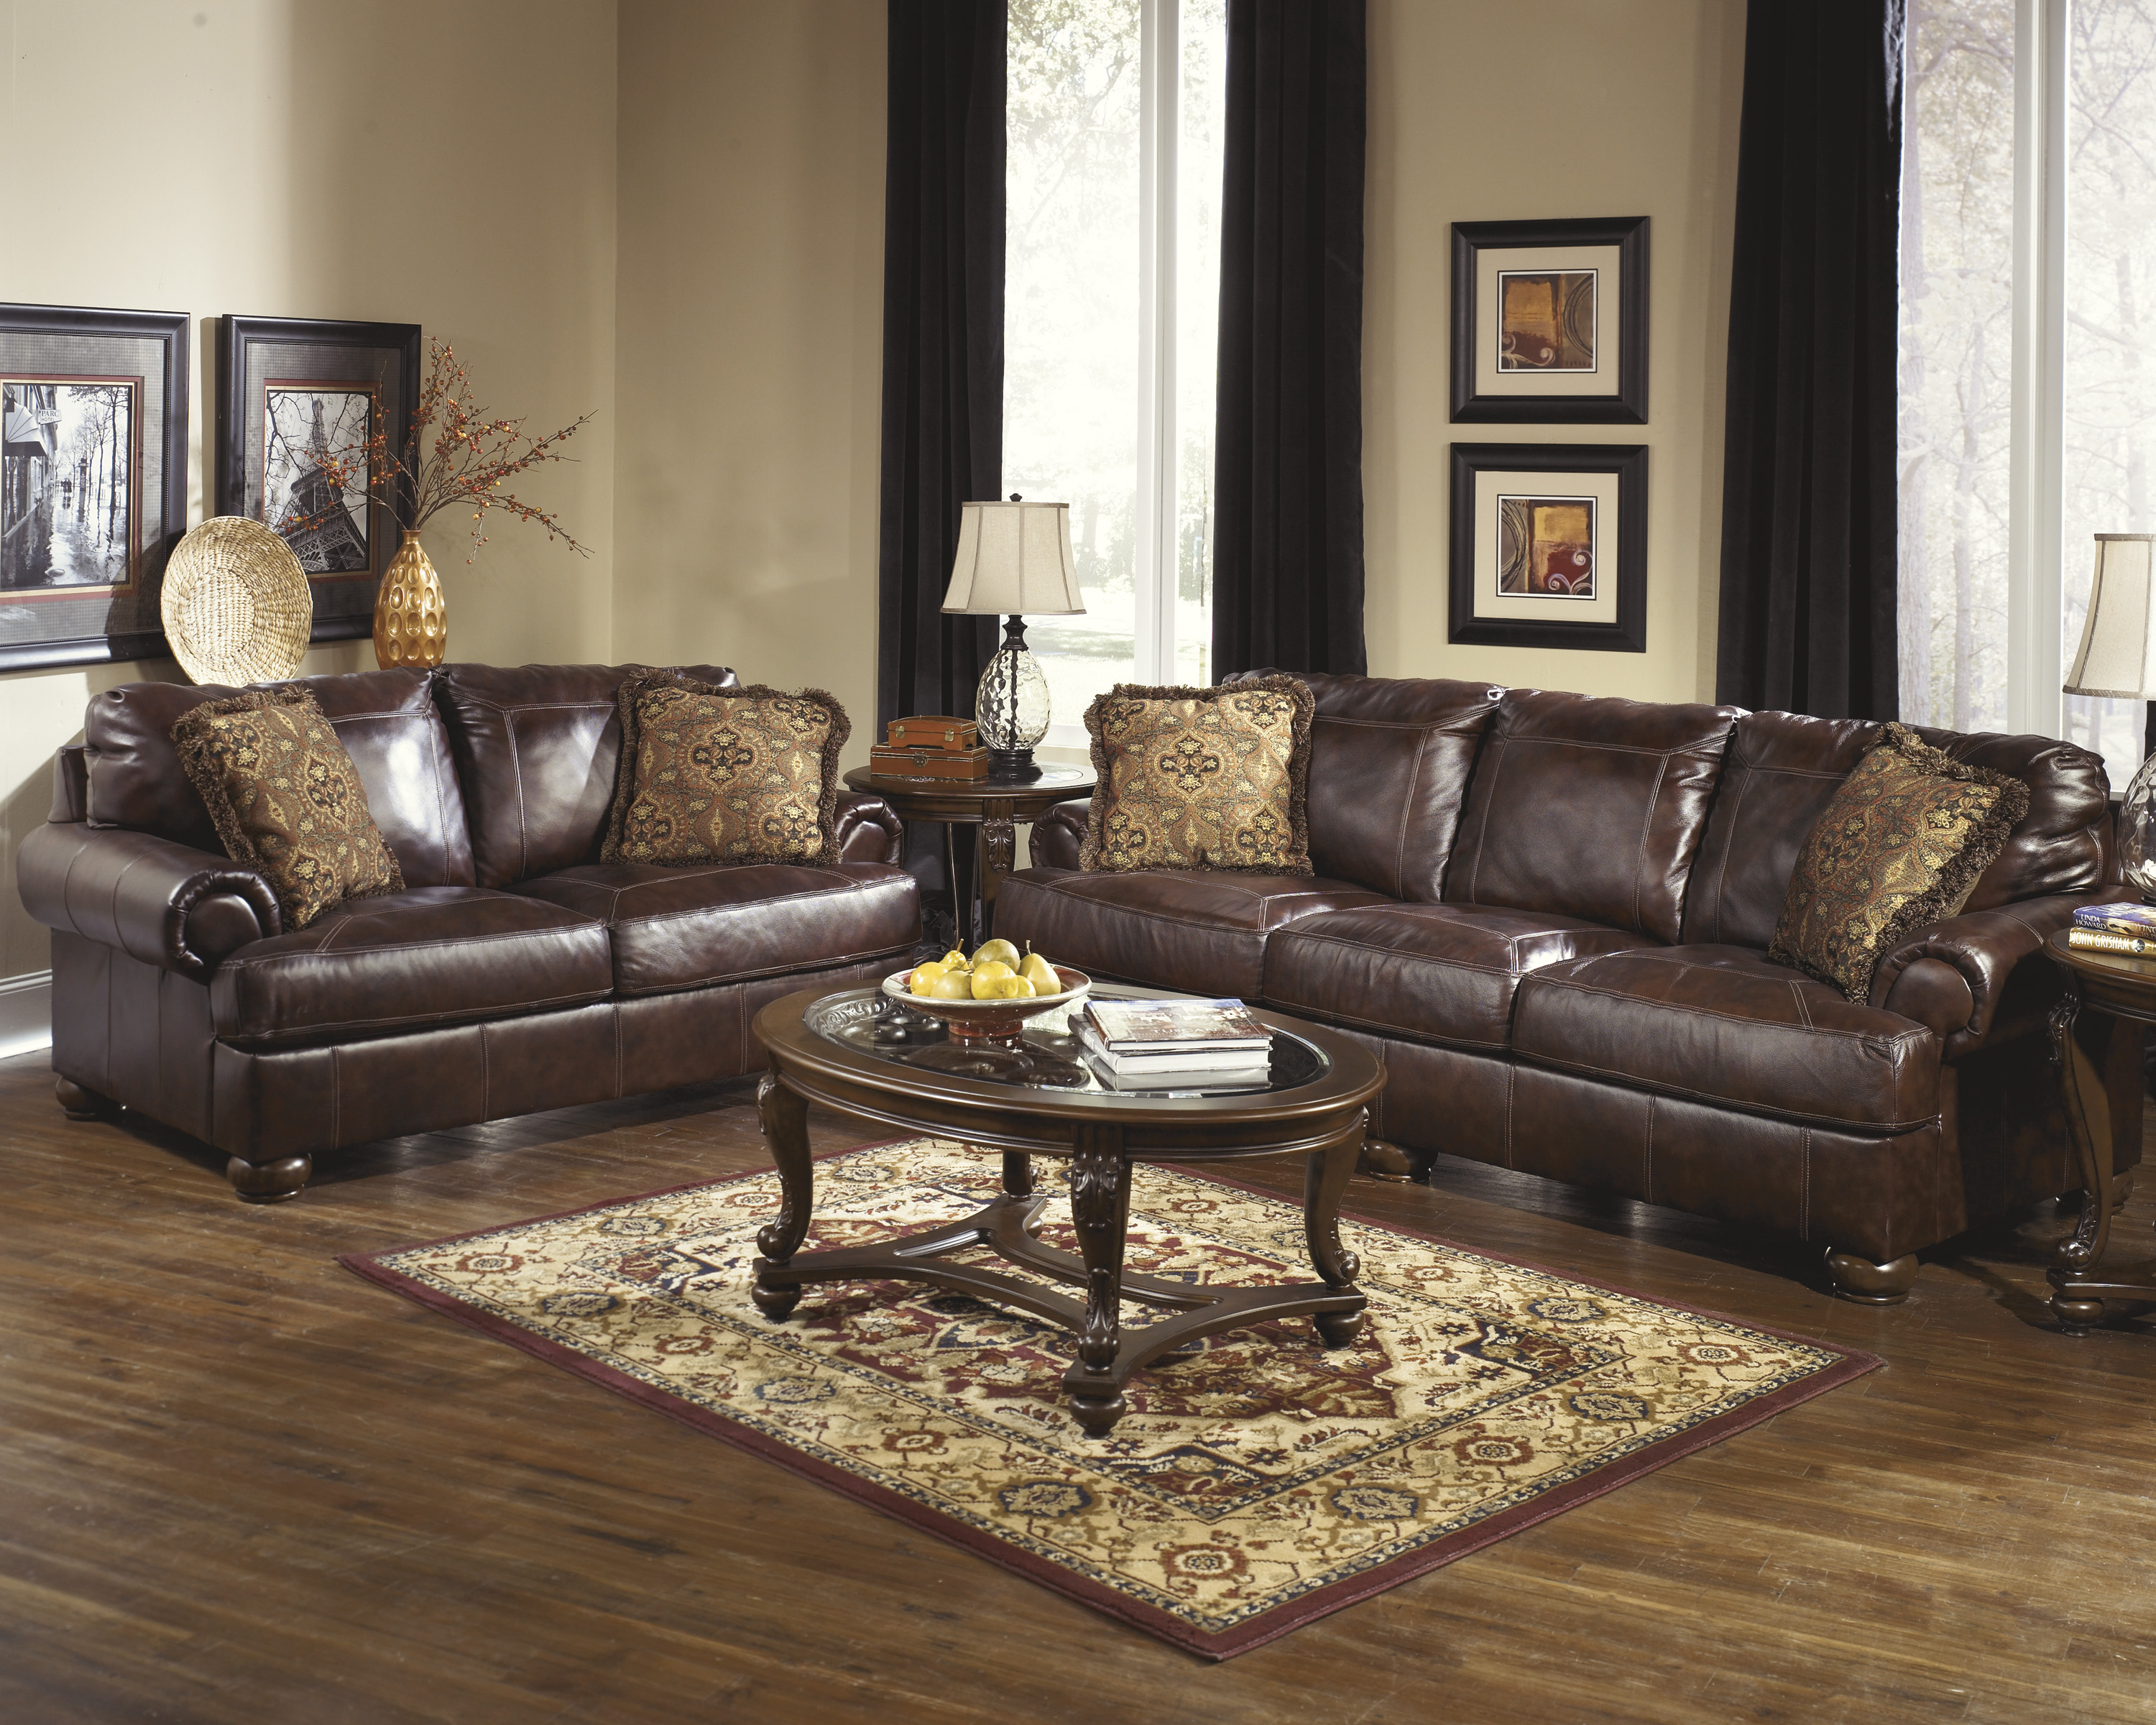 leather sofa set 42000-38-35-t499-sd DLXARZB